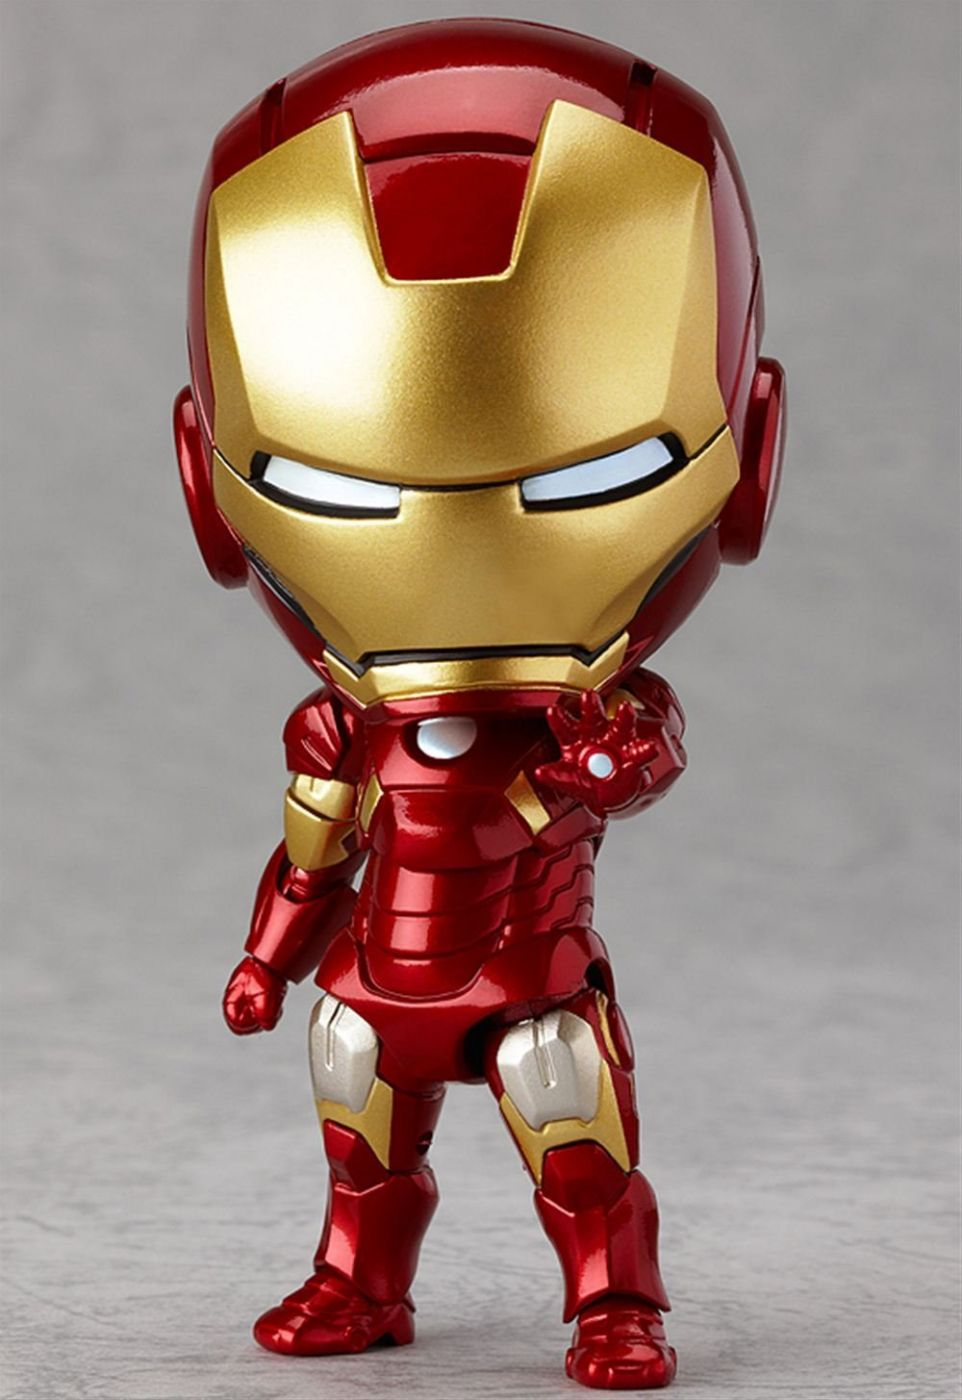 Фигурка Nendoroid Iron Man